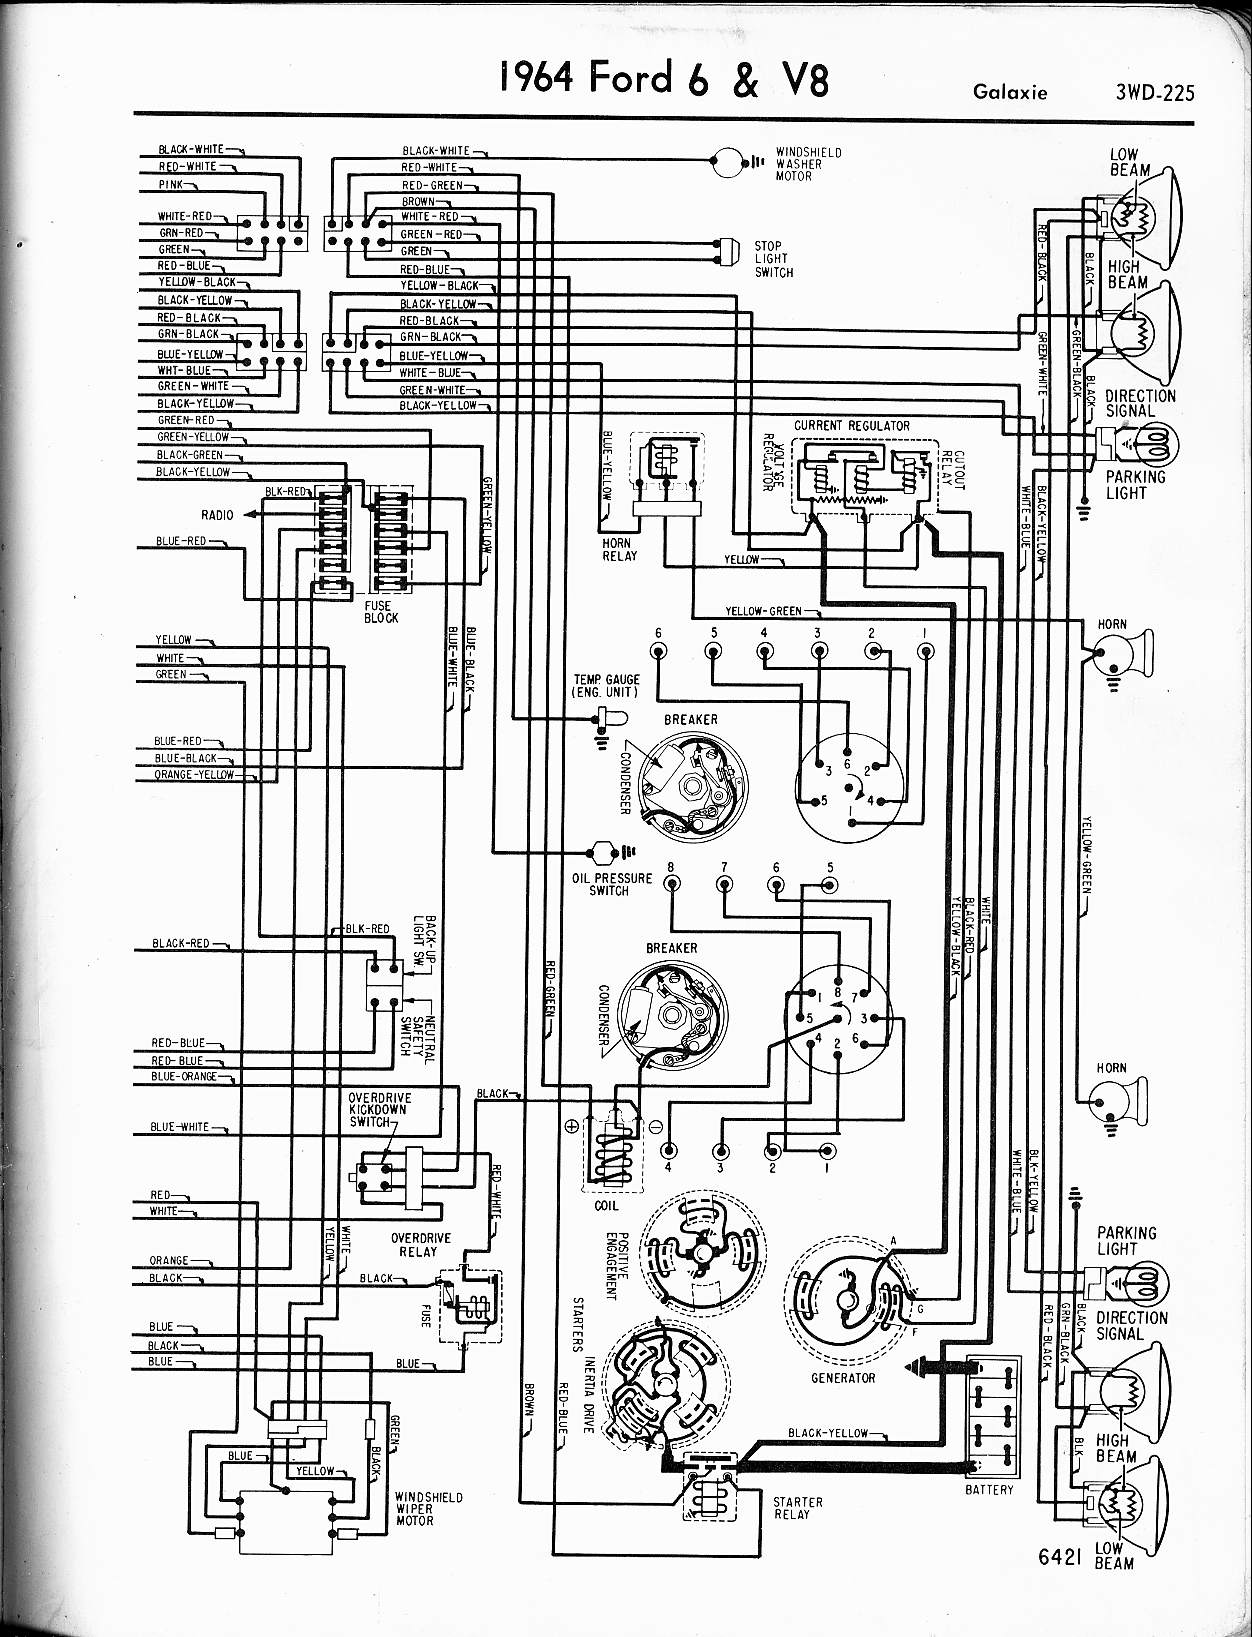 MWire5765 225 57 65 ford wiring diagrams ford car wiring diagrams at bayanpartner.co